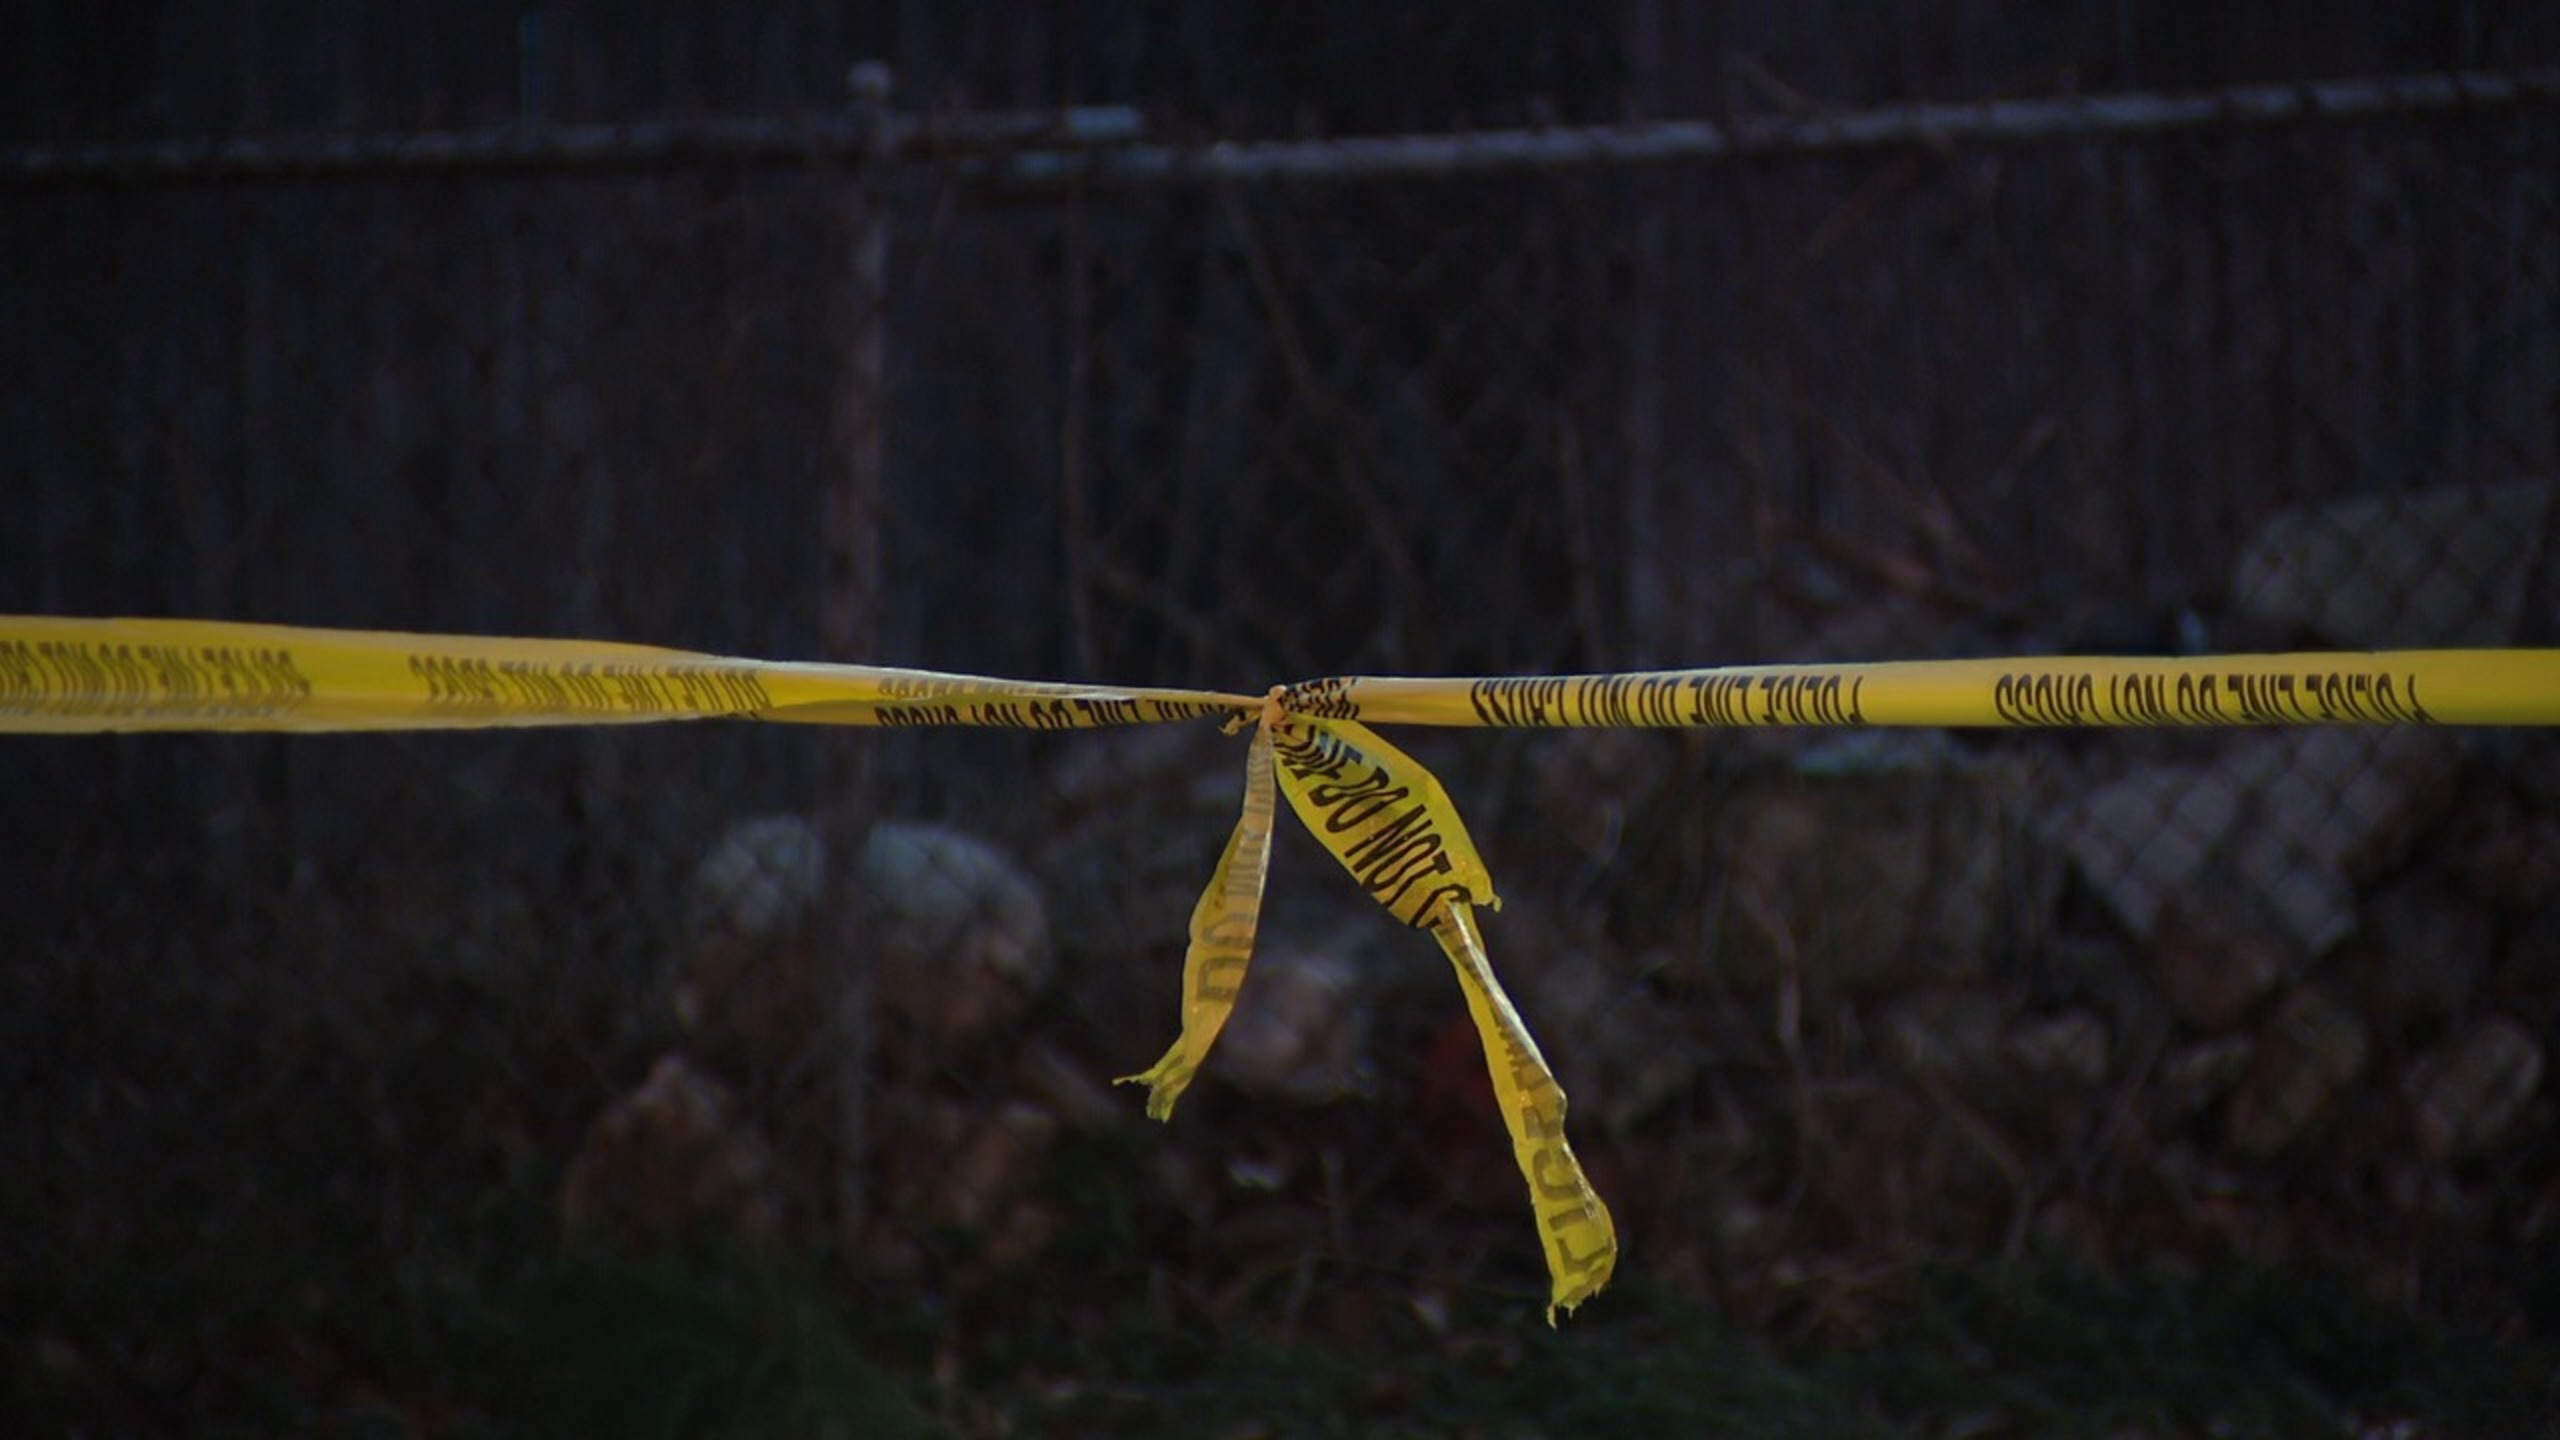 Double shooting in North Philadelphia leaves two critical